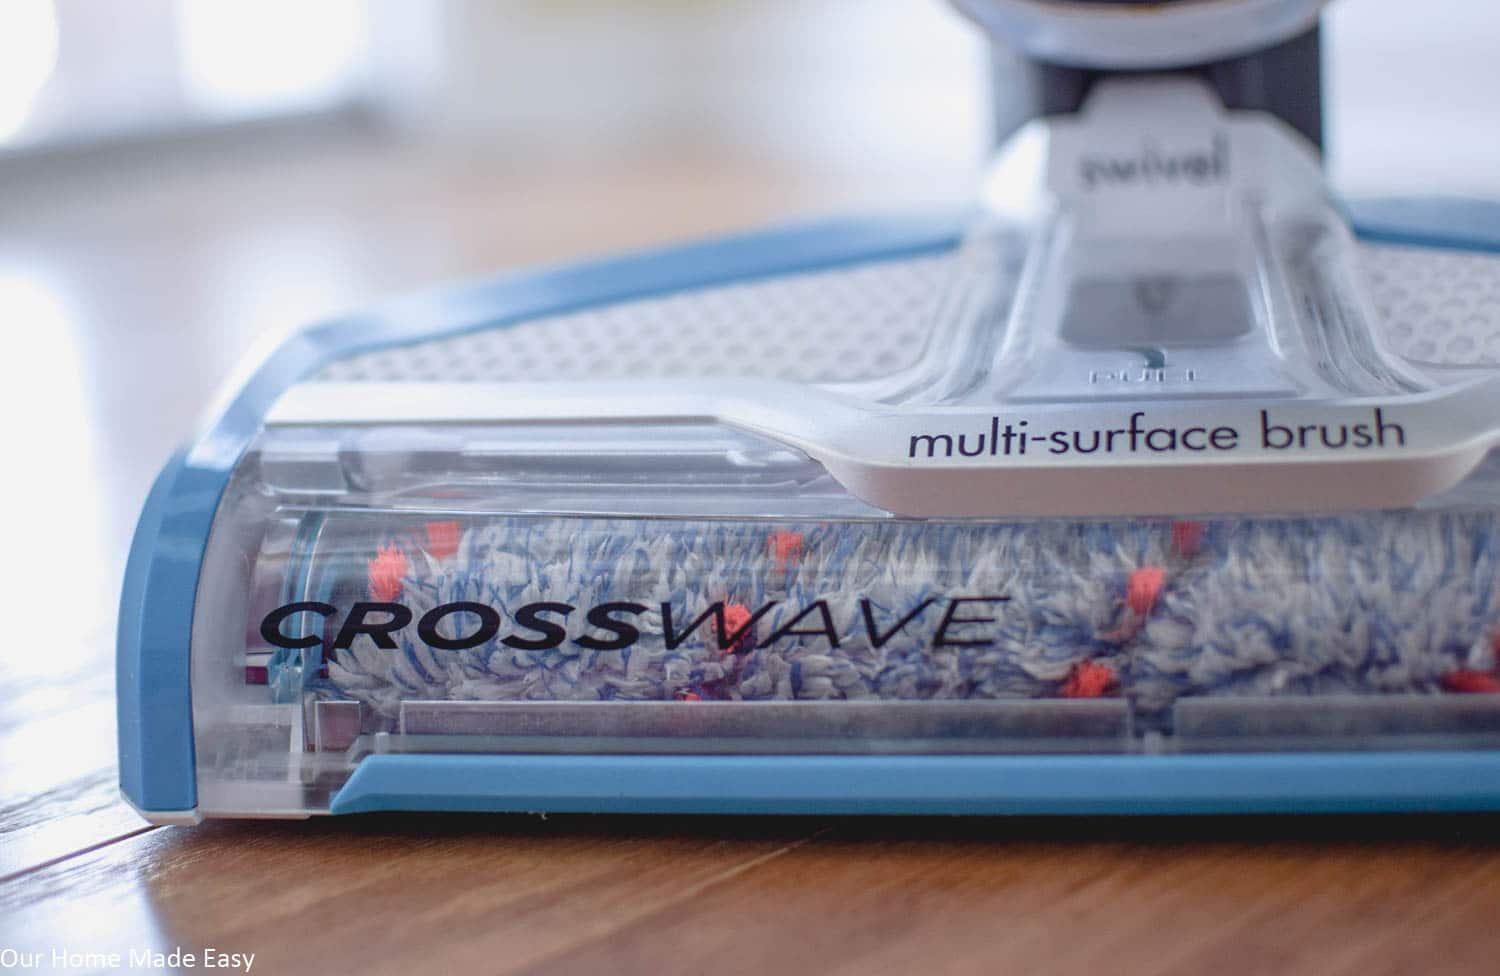 The Bissell CrossWave multi-surface brush makes switching from hardwood floors to rugs a breeze!